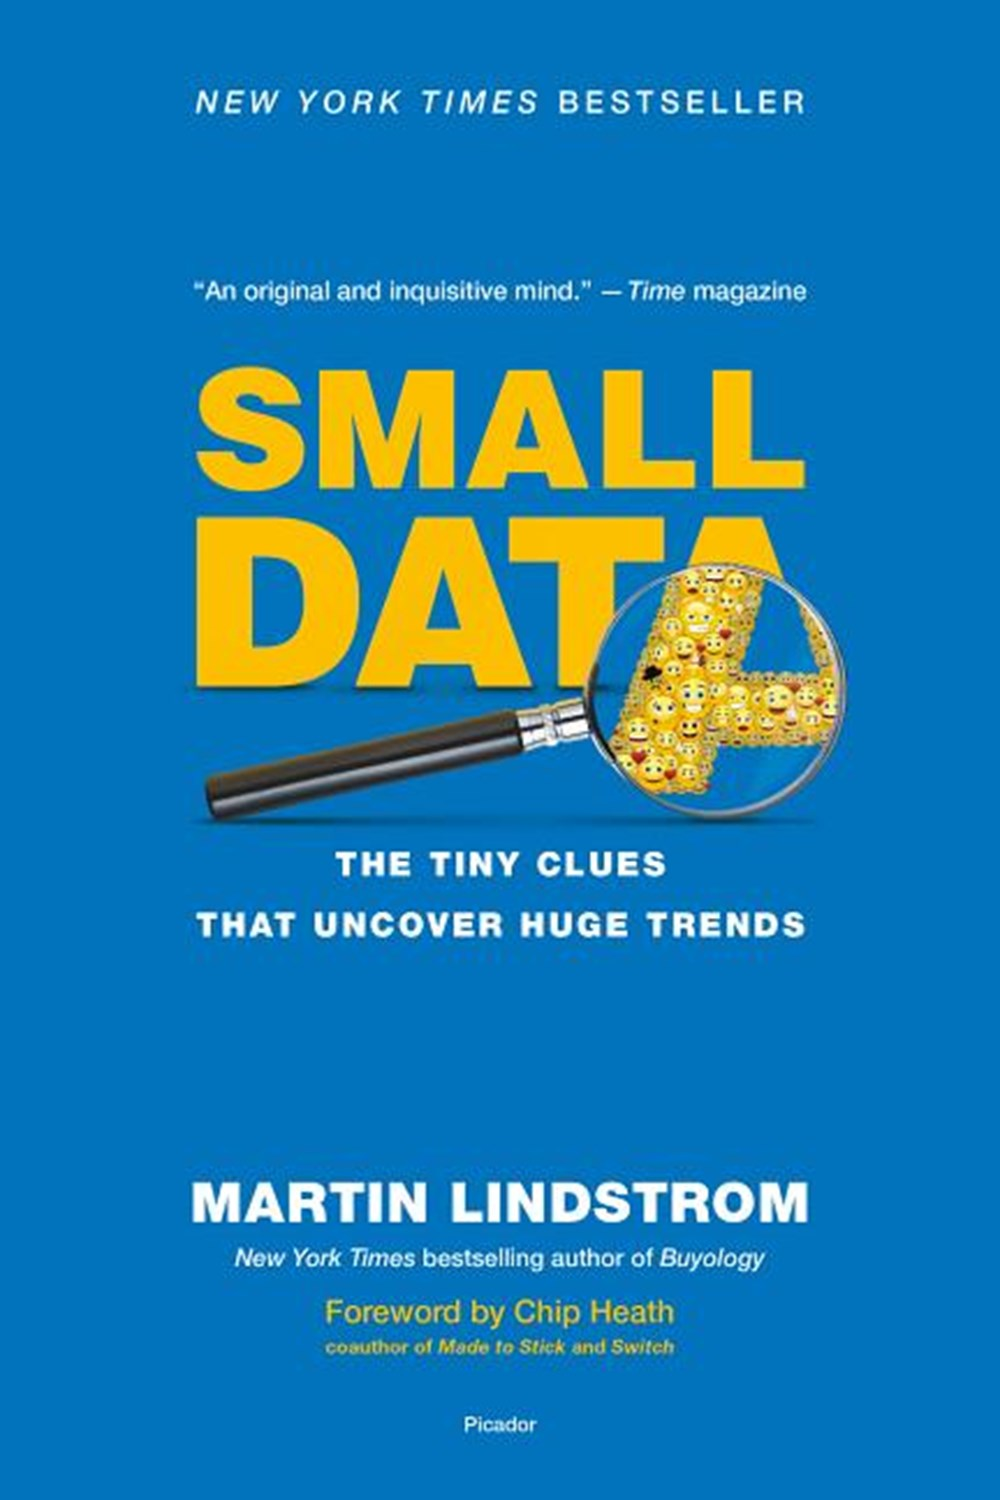 Small Data The Tiny Clues That Uncover Huge Trends